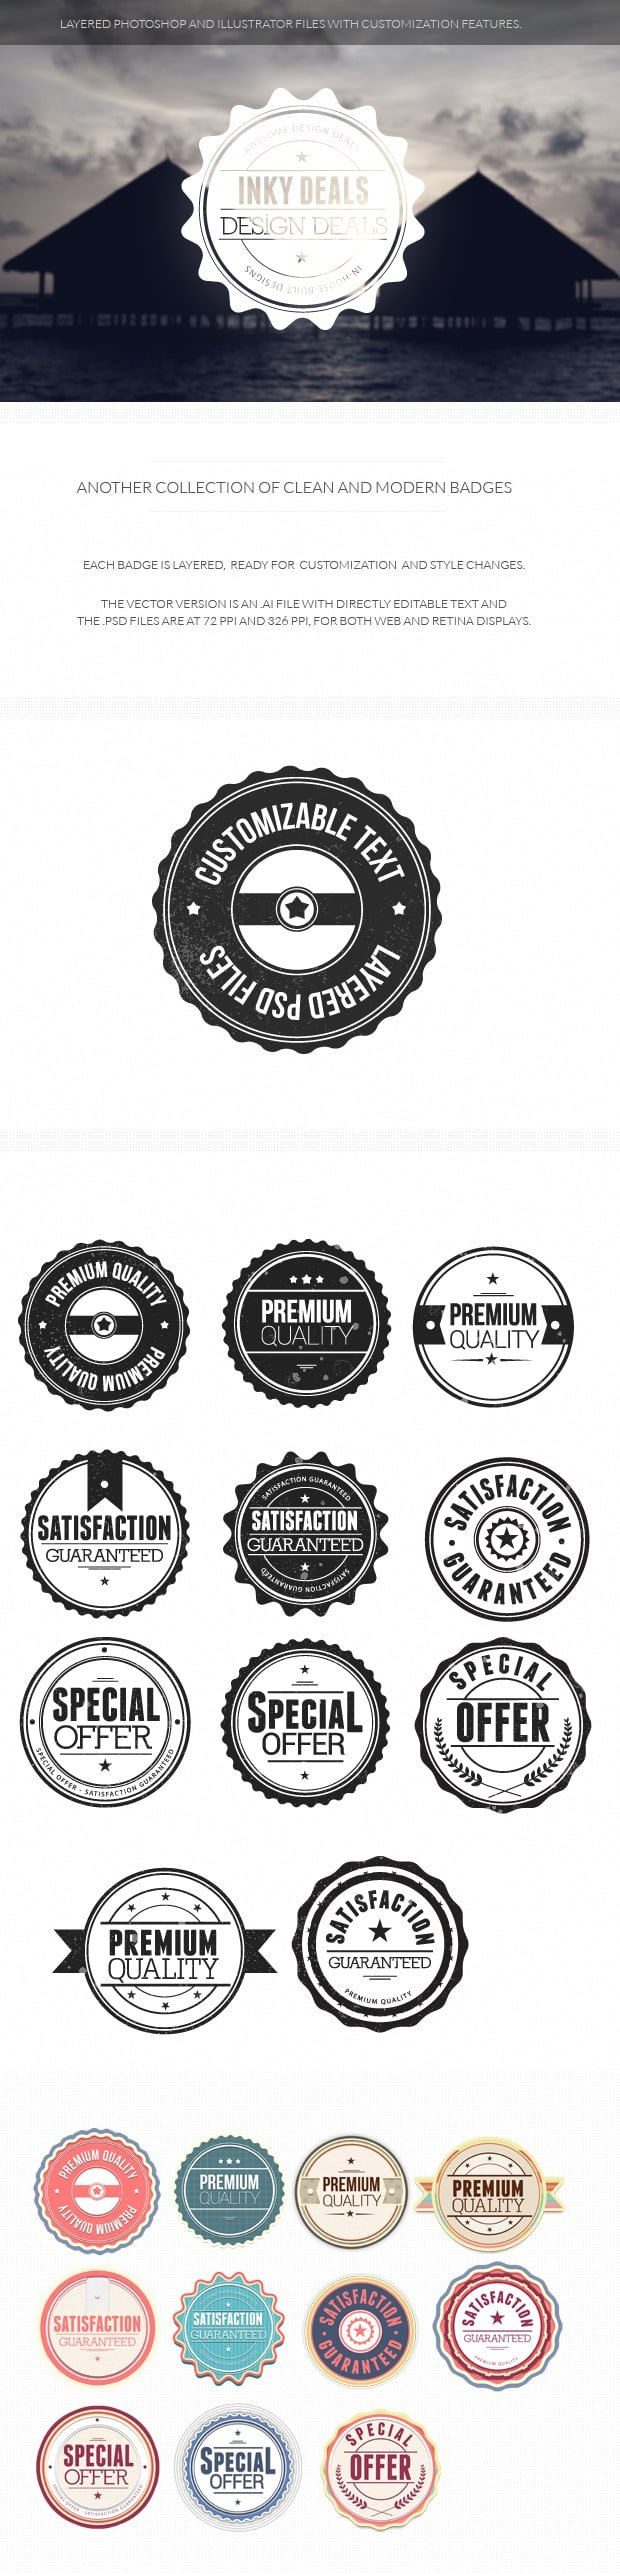 Clean and Modern Badges set 2 6